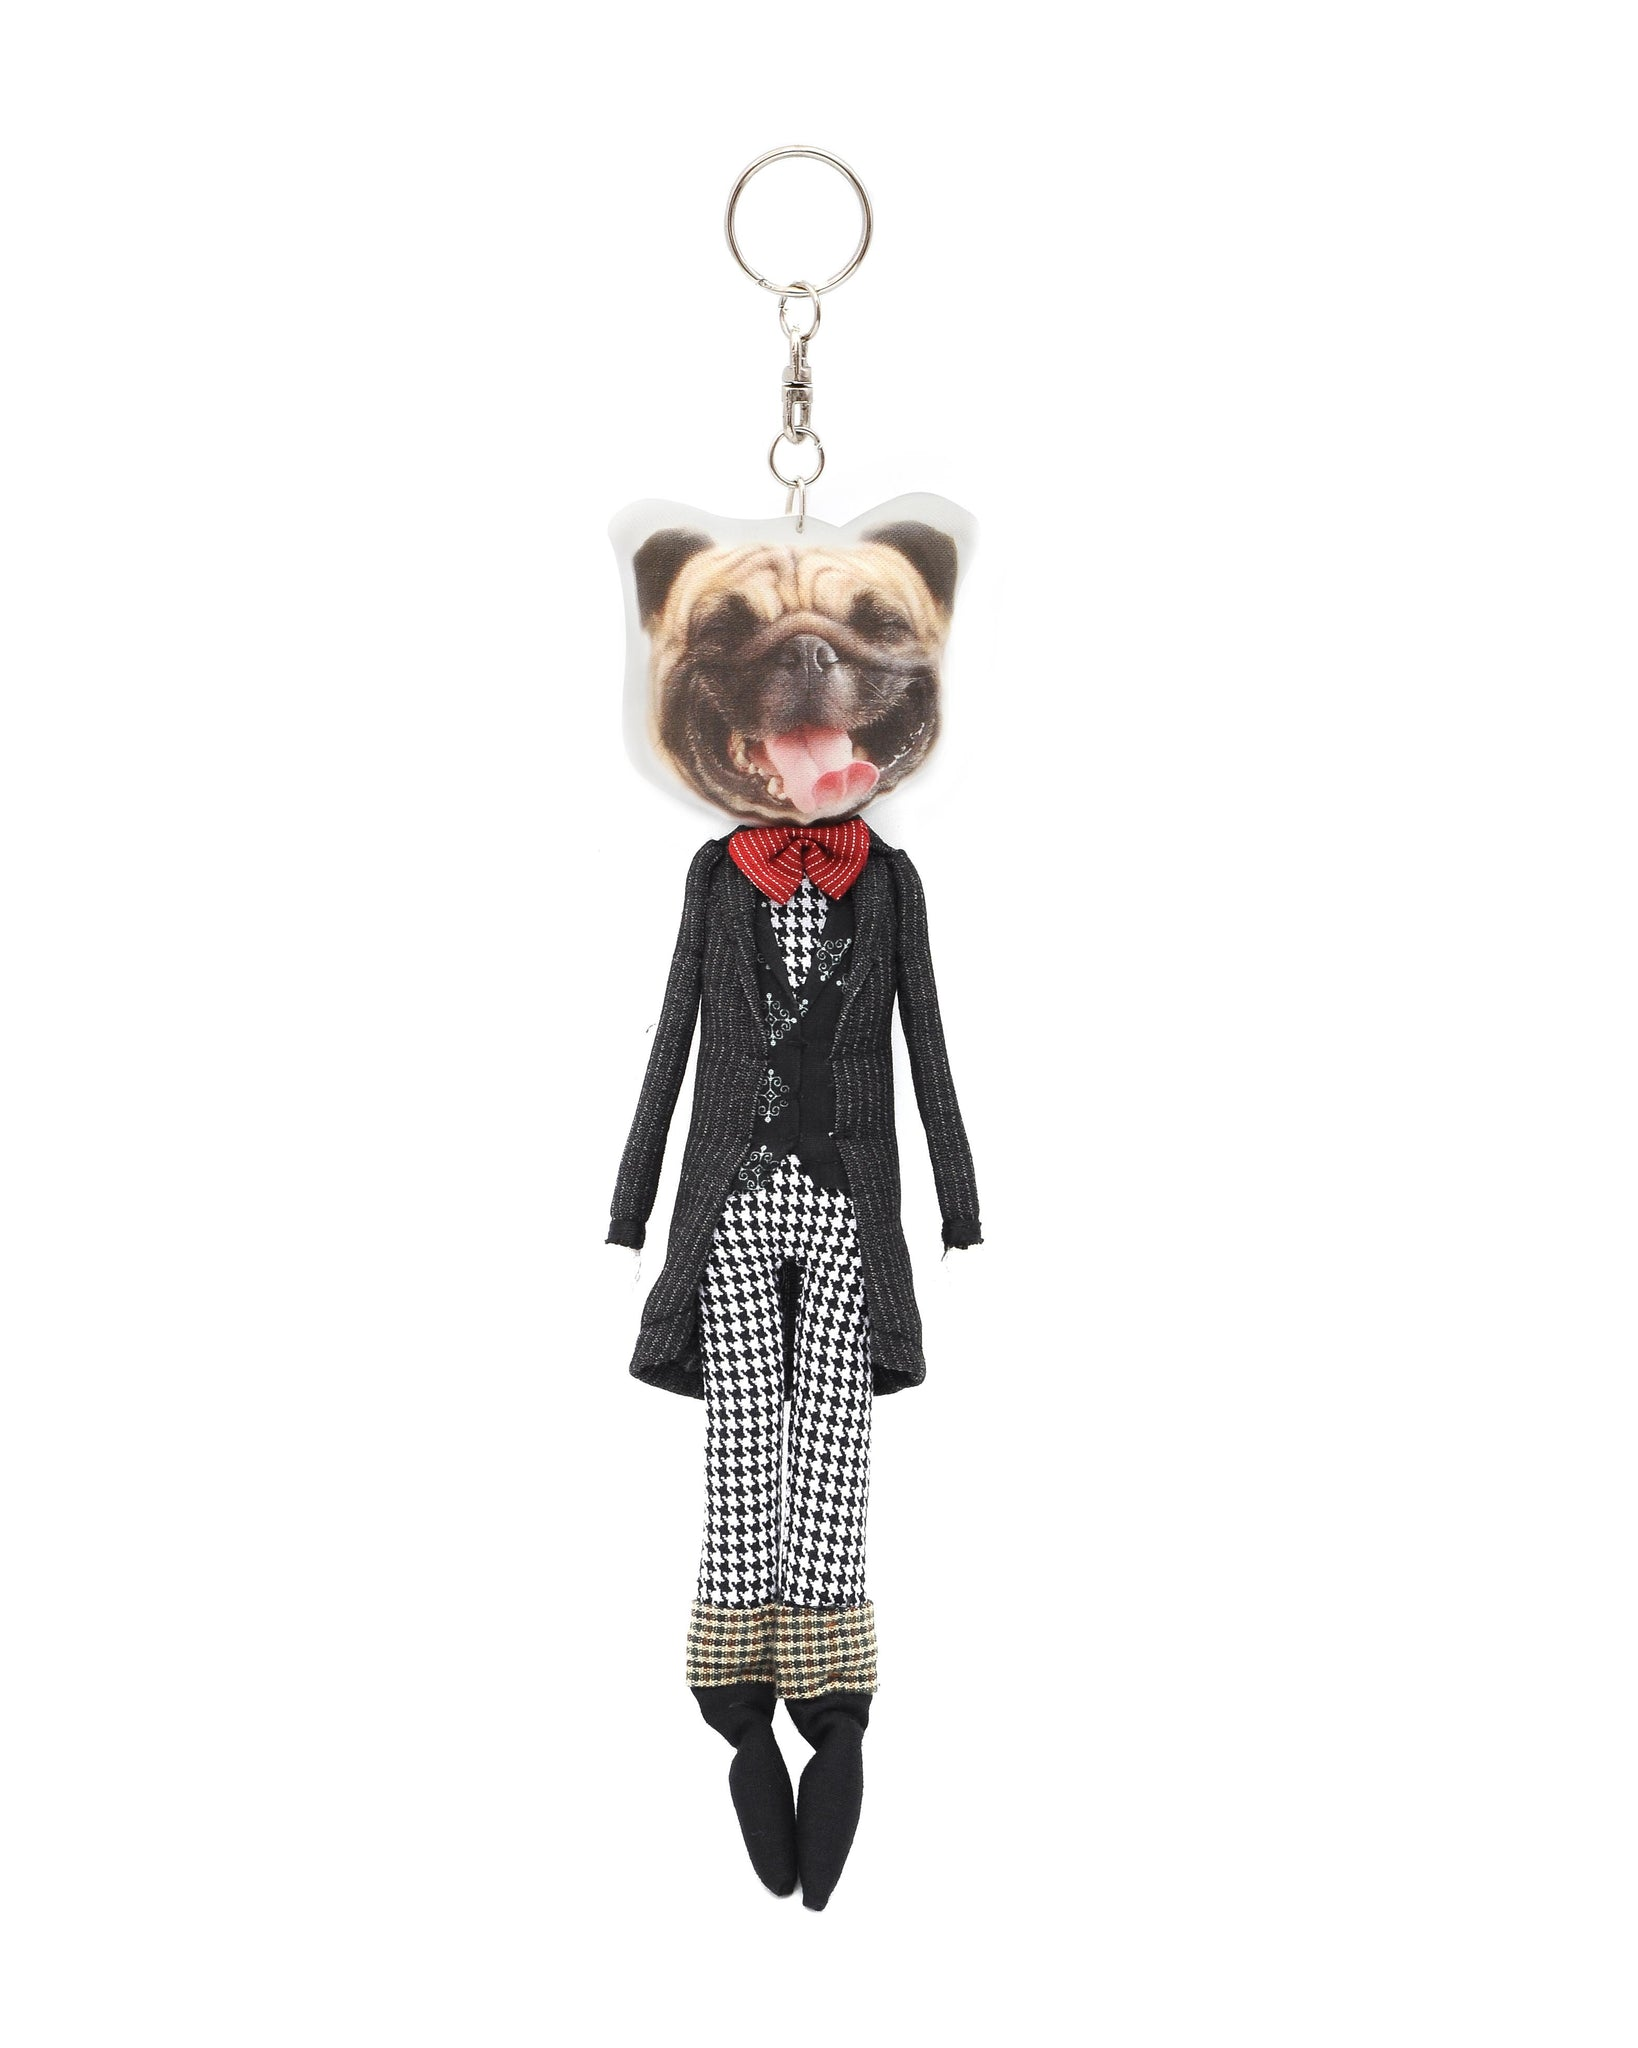 New-Style Fashionable Cute Animal Keychains